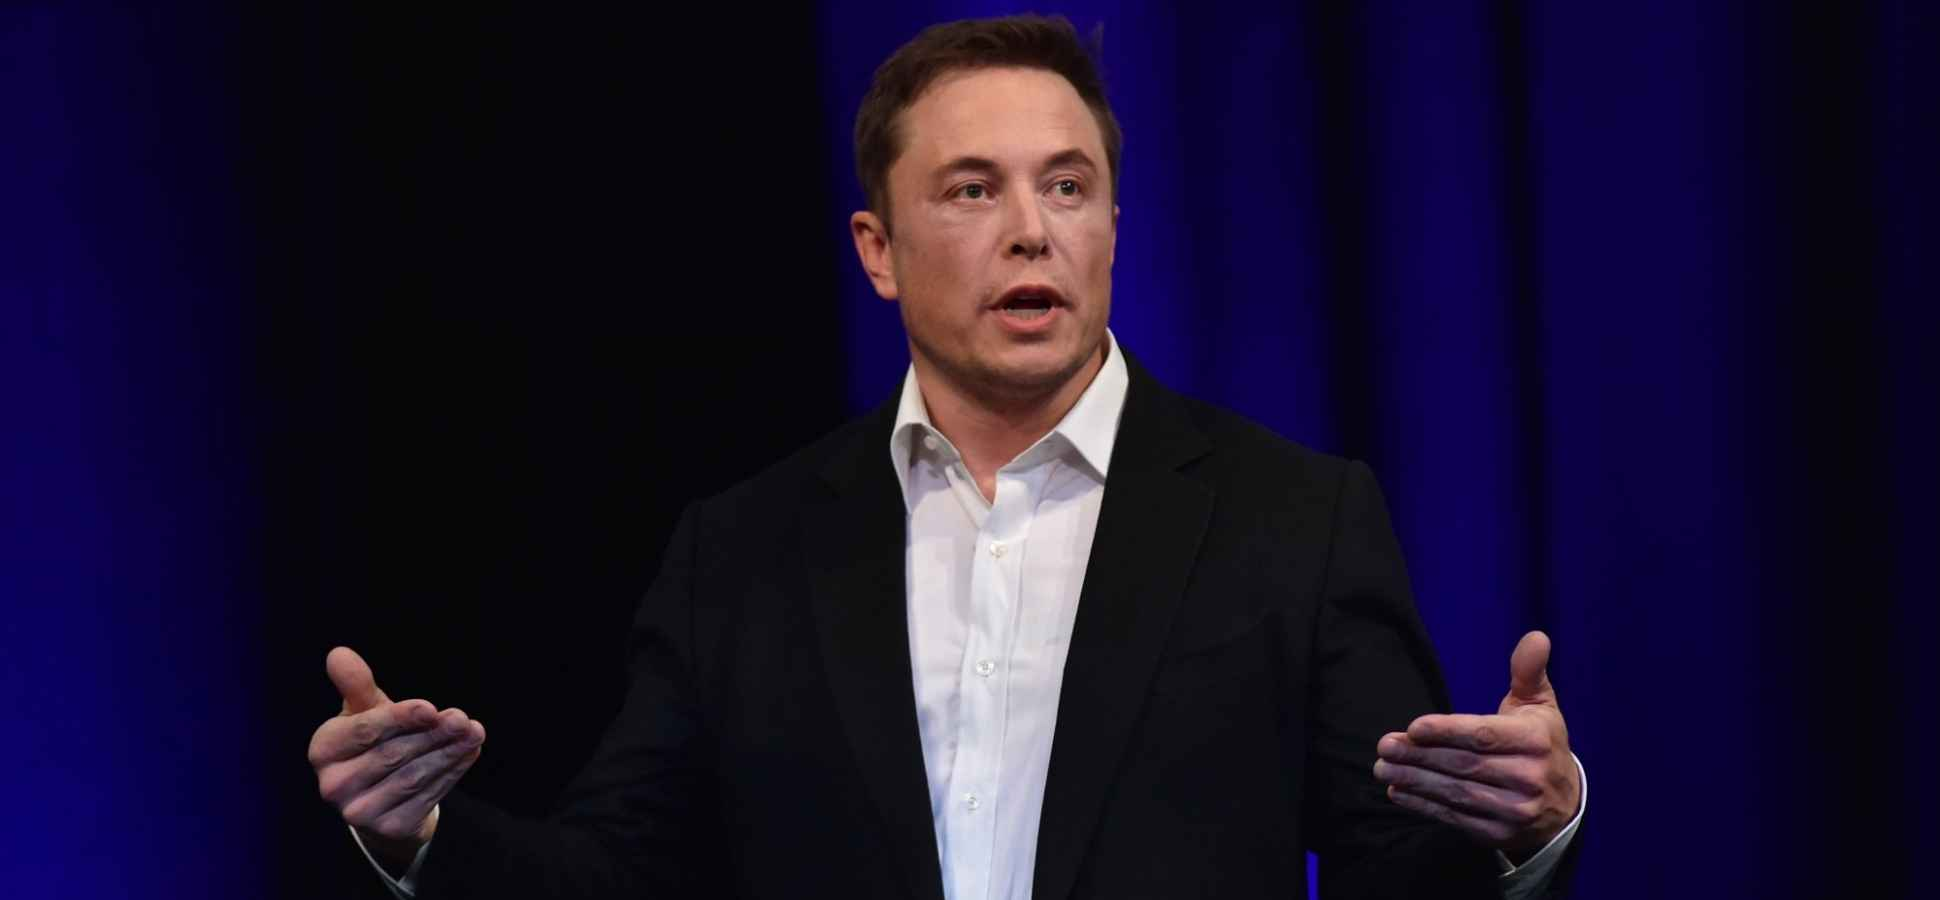 Elon Musk Fails Public Speaking 101. Here's Why We Hang on Every Word (and What You Can Learn From Him)